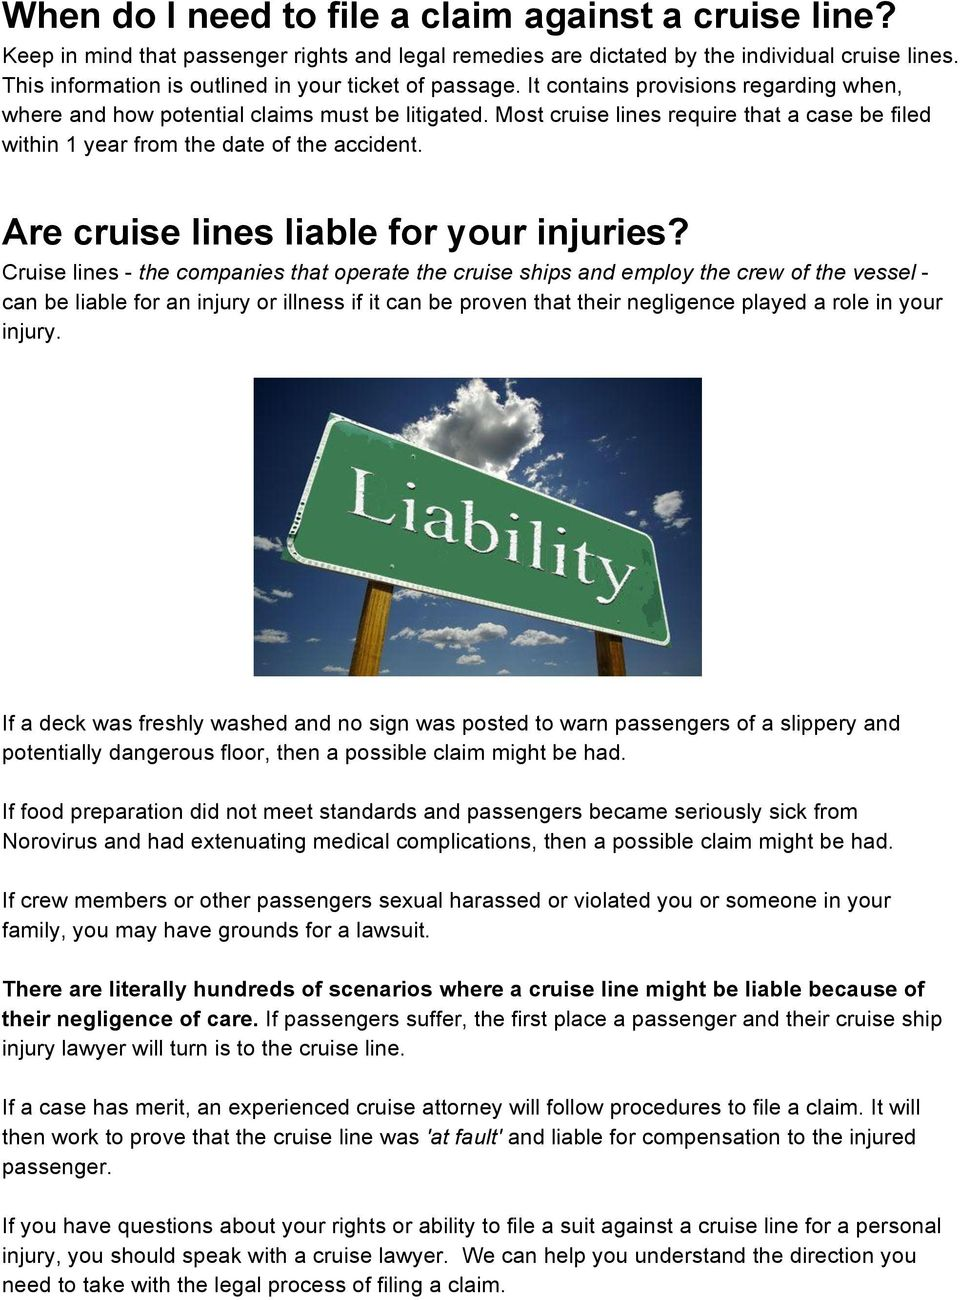 Most cruise lines require that a case be filed within 1 year from the date of the accident. Are cruise lines liable for your injuries?